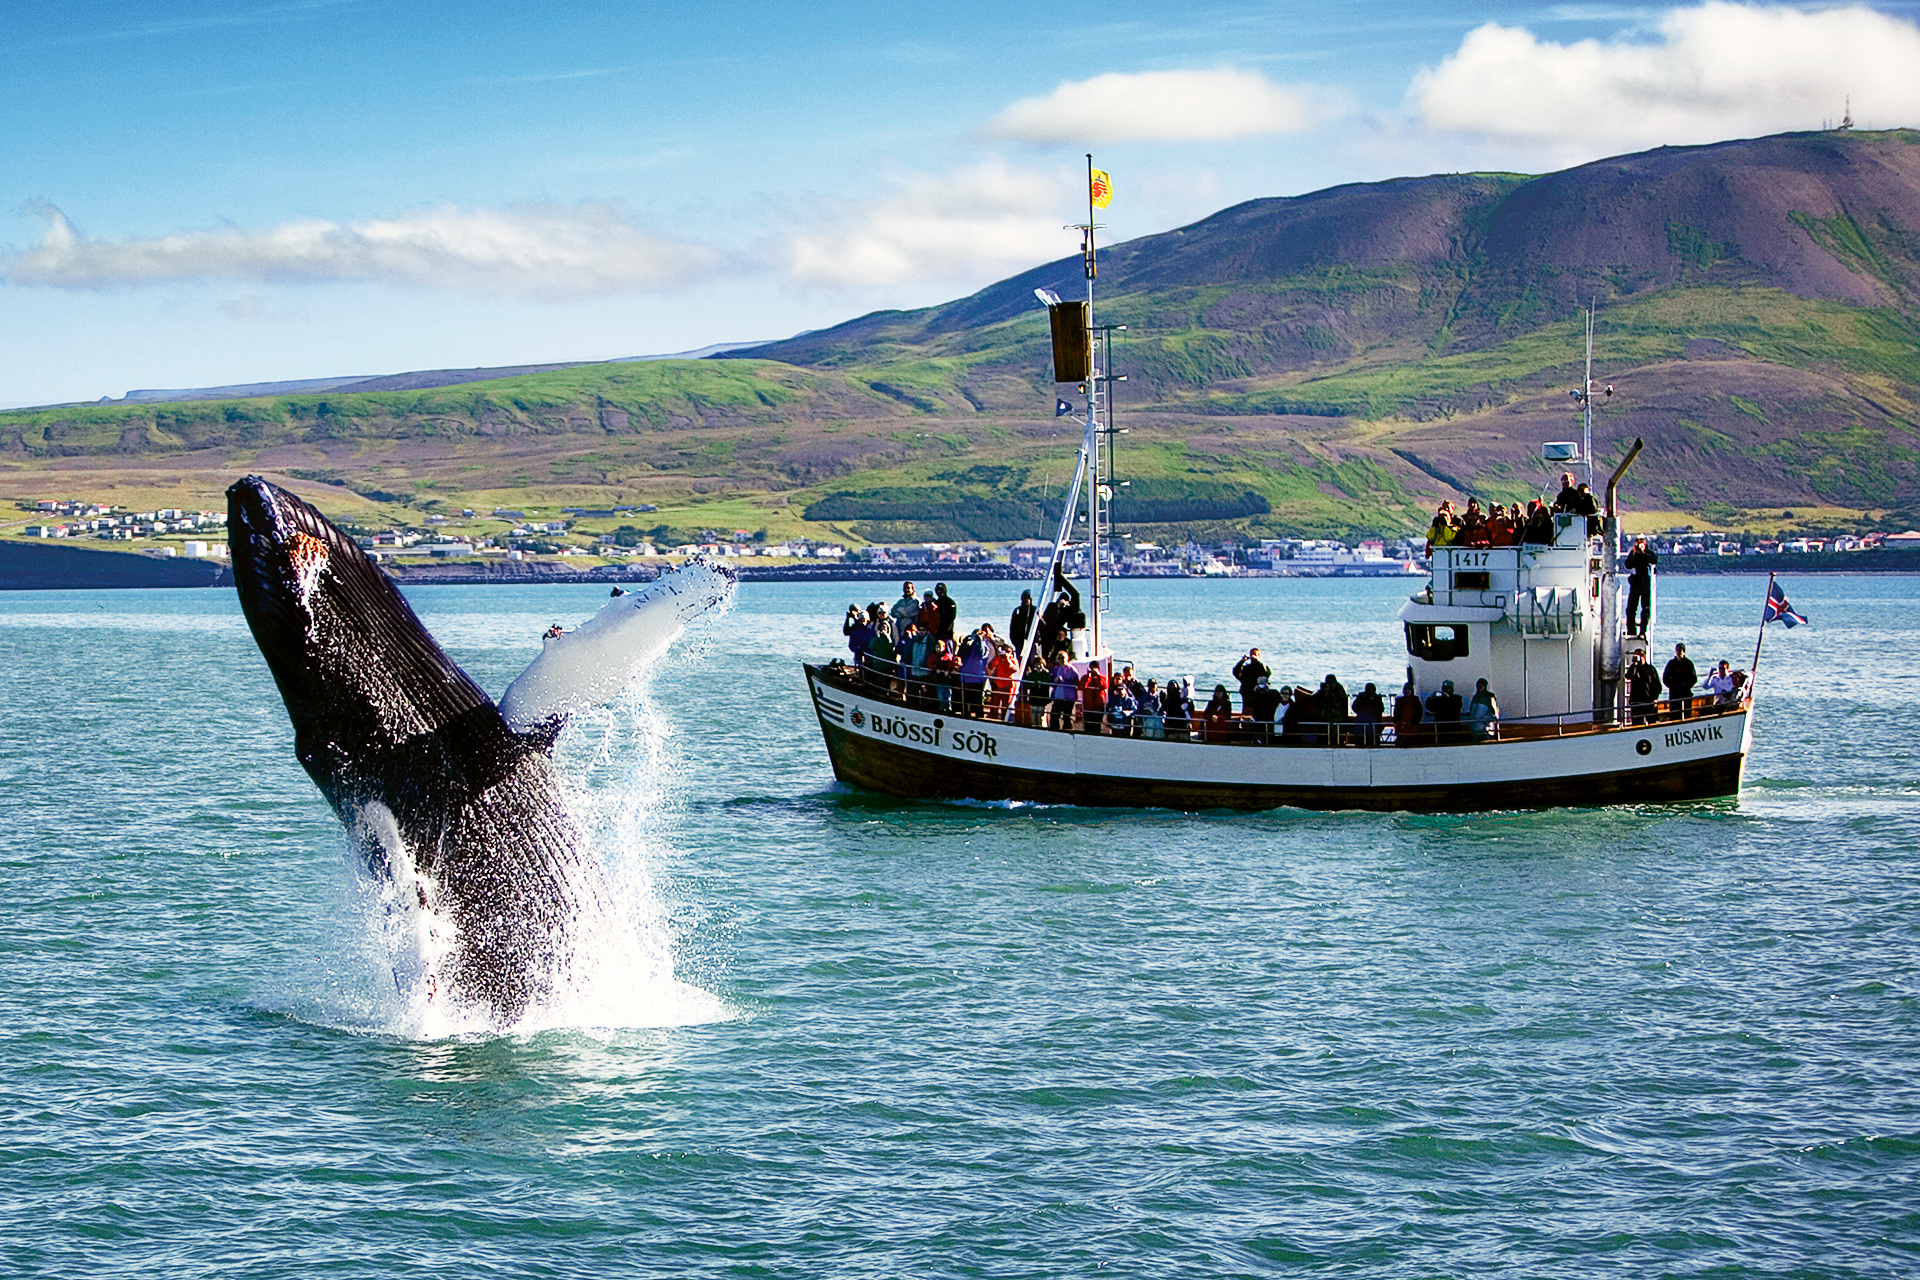 https://bubo.sk/uploads/galleries/5039/jumping-humpback-with-husavik-in-the-background.jpg